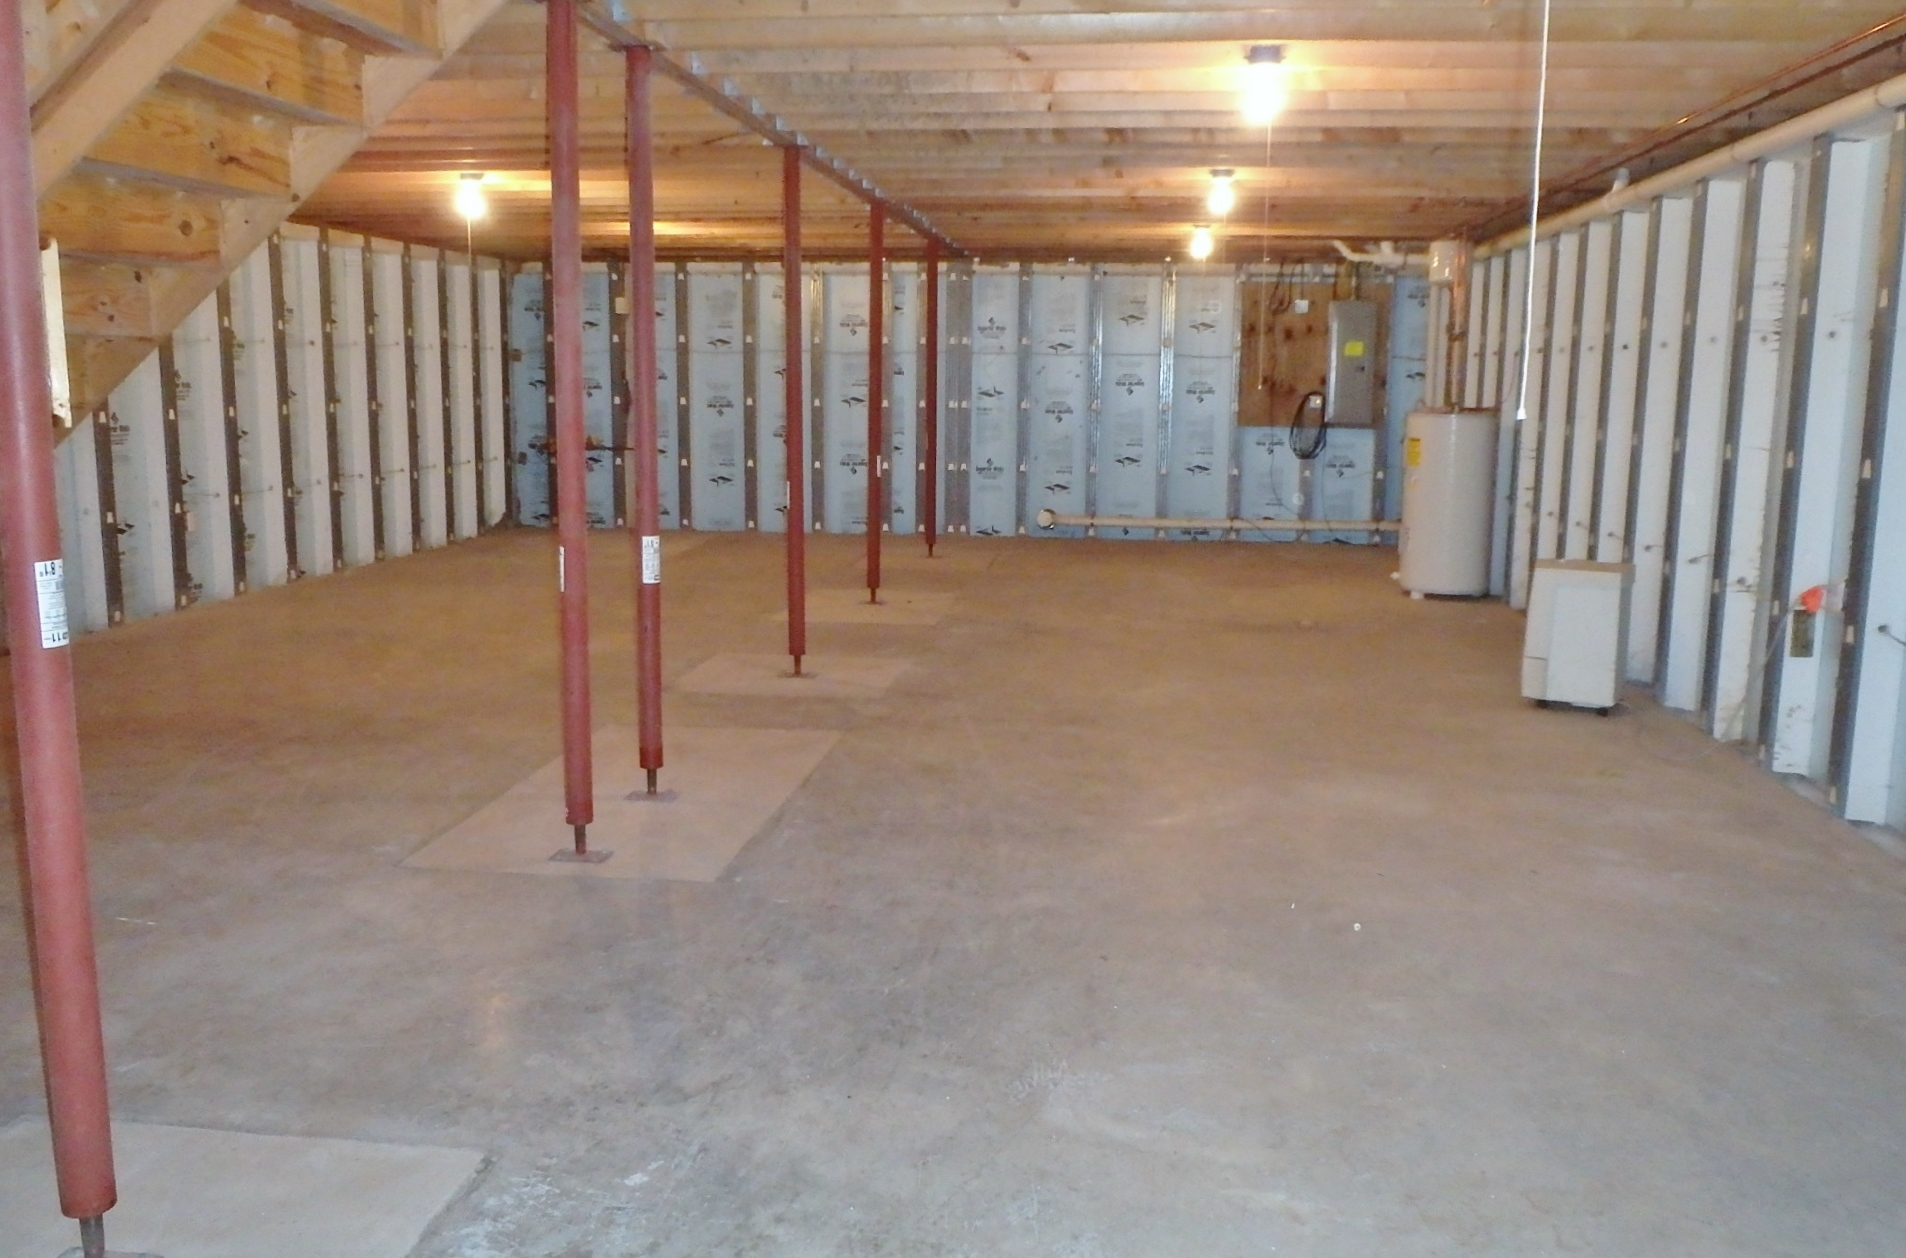 Unfinished basement photo at 261 Ghaner Drive.